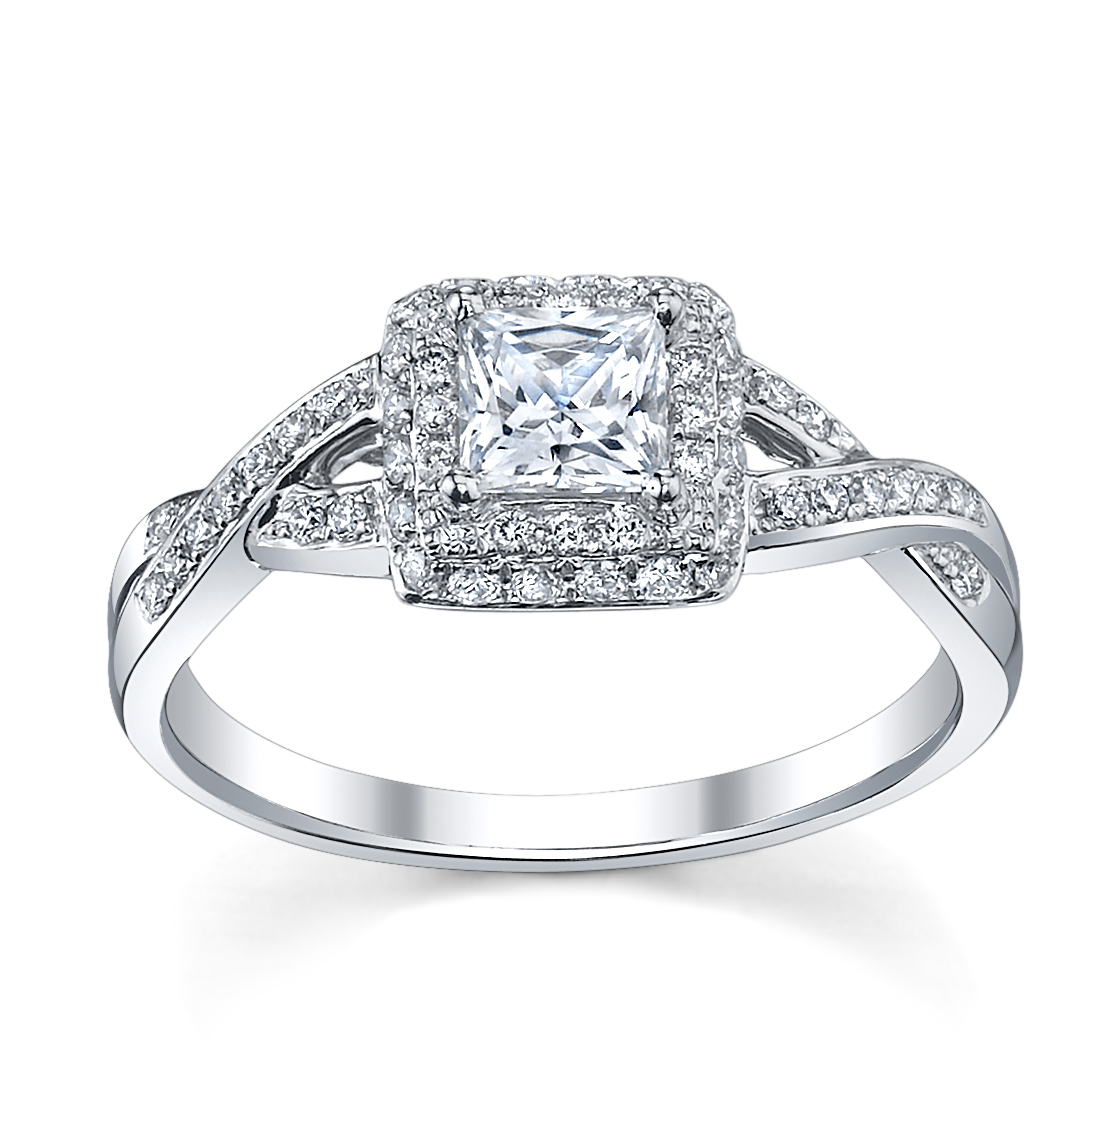 PRINCESS CUT DIAMOND RINGS - Perhanda Fasa d2233008d